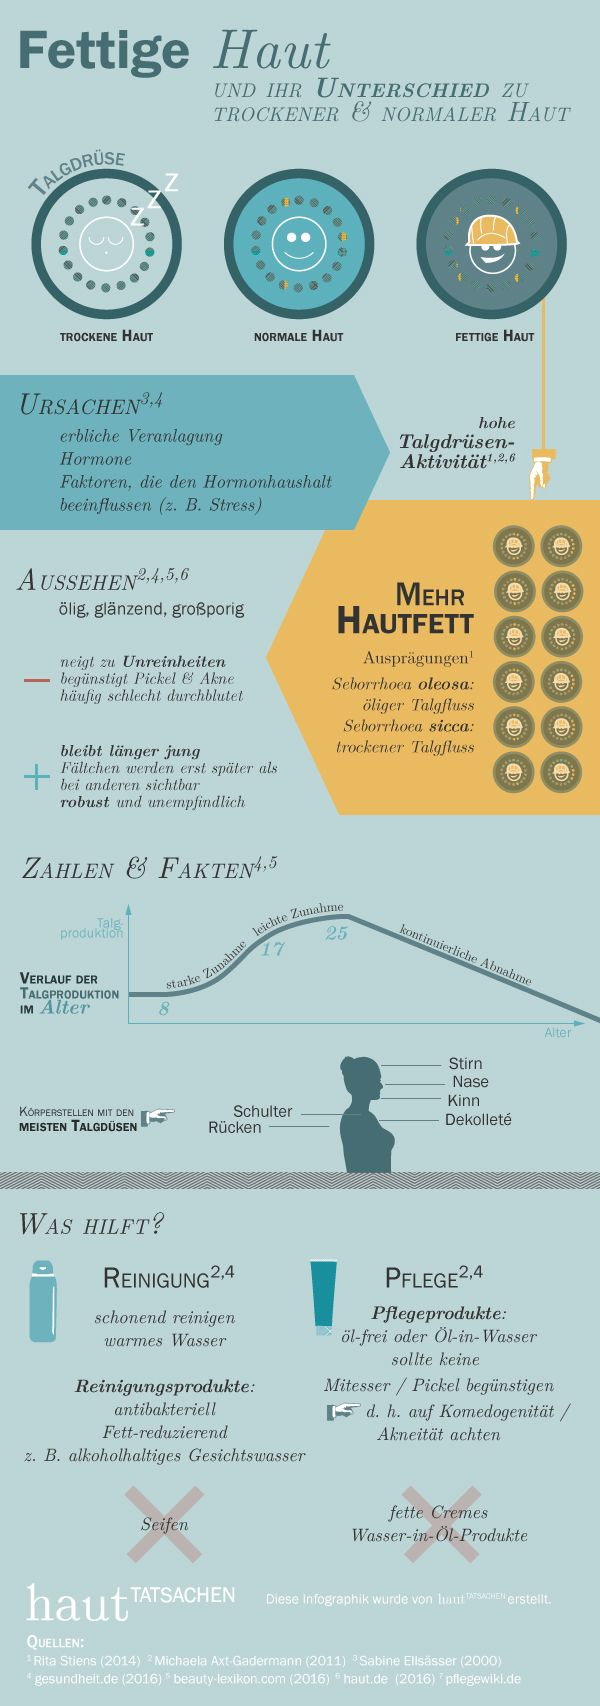 17 best Haut images on Pinterest | Info graphics, Health and One day